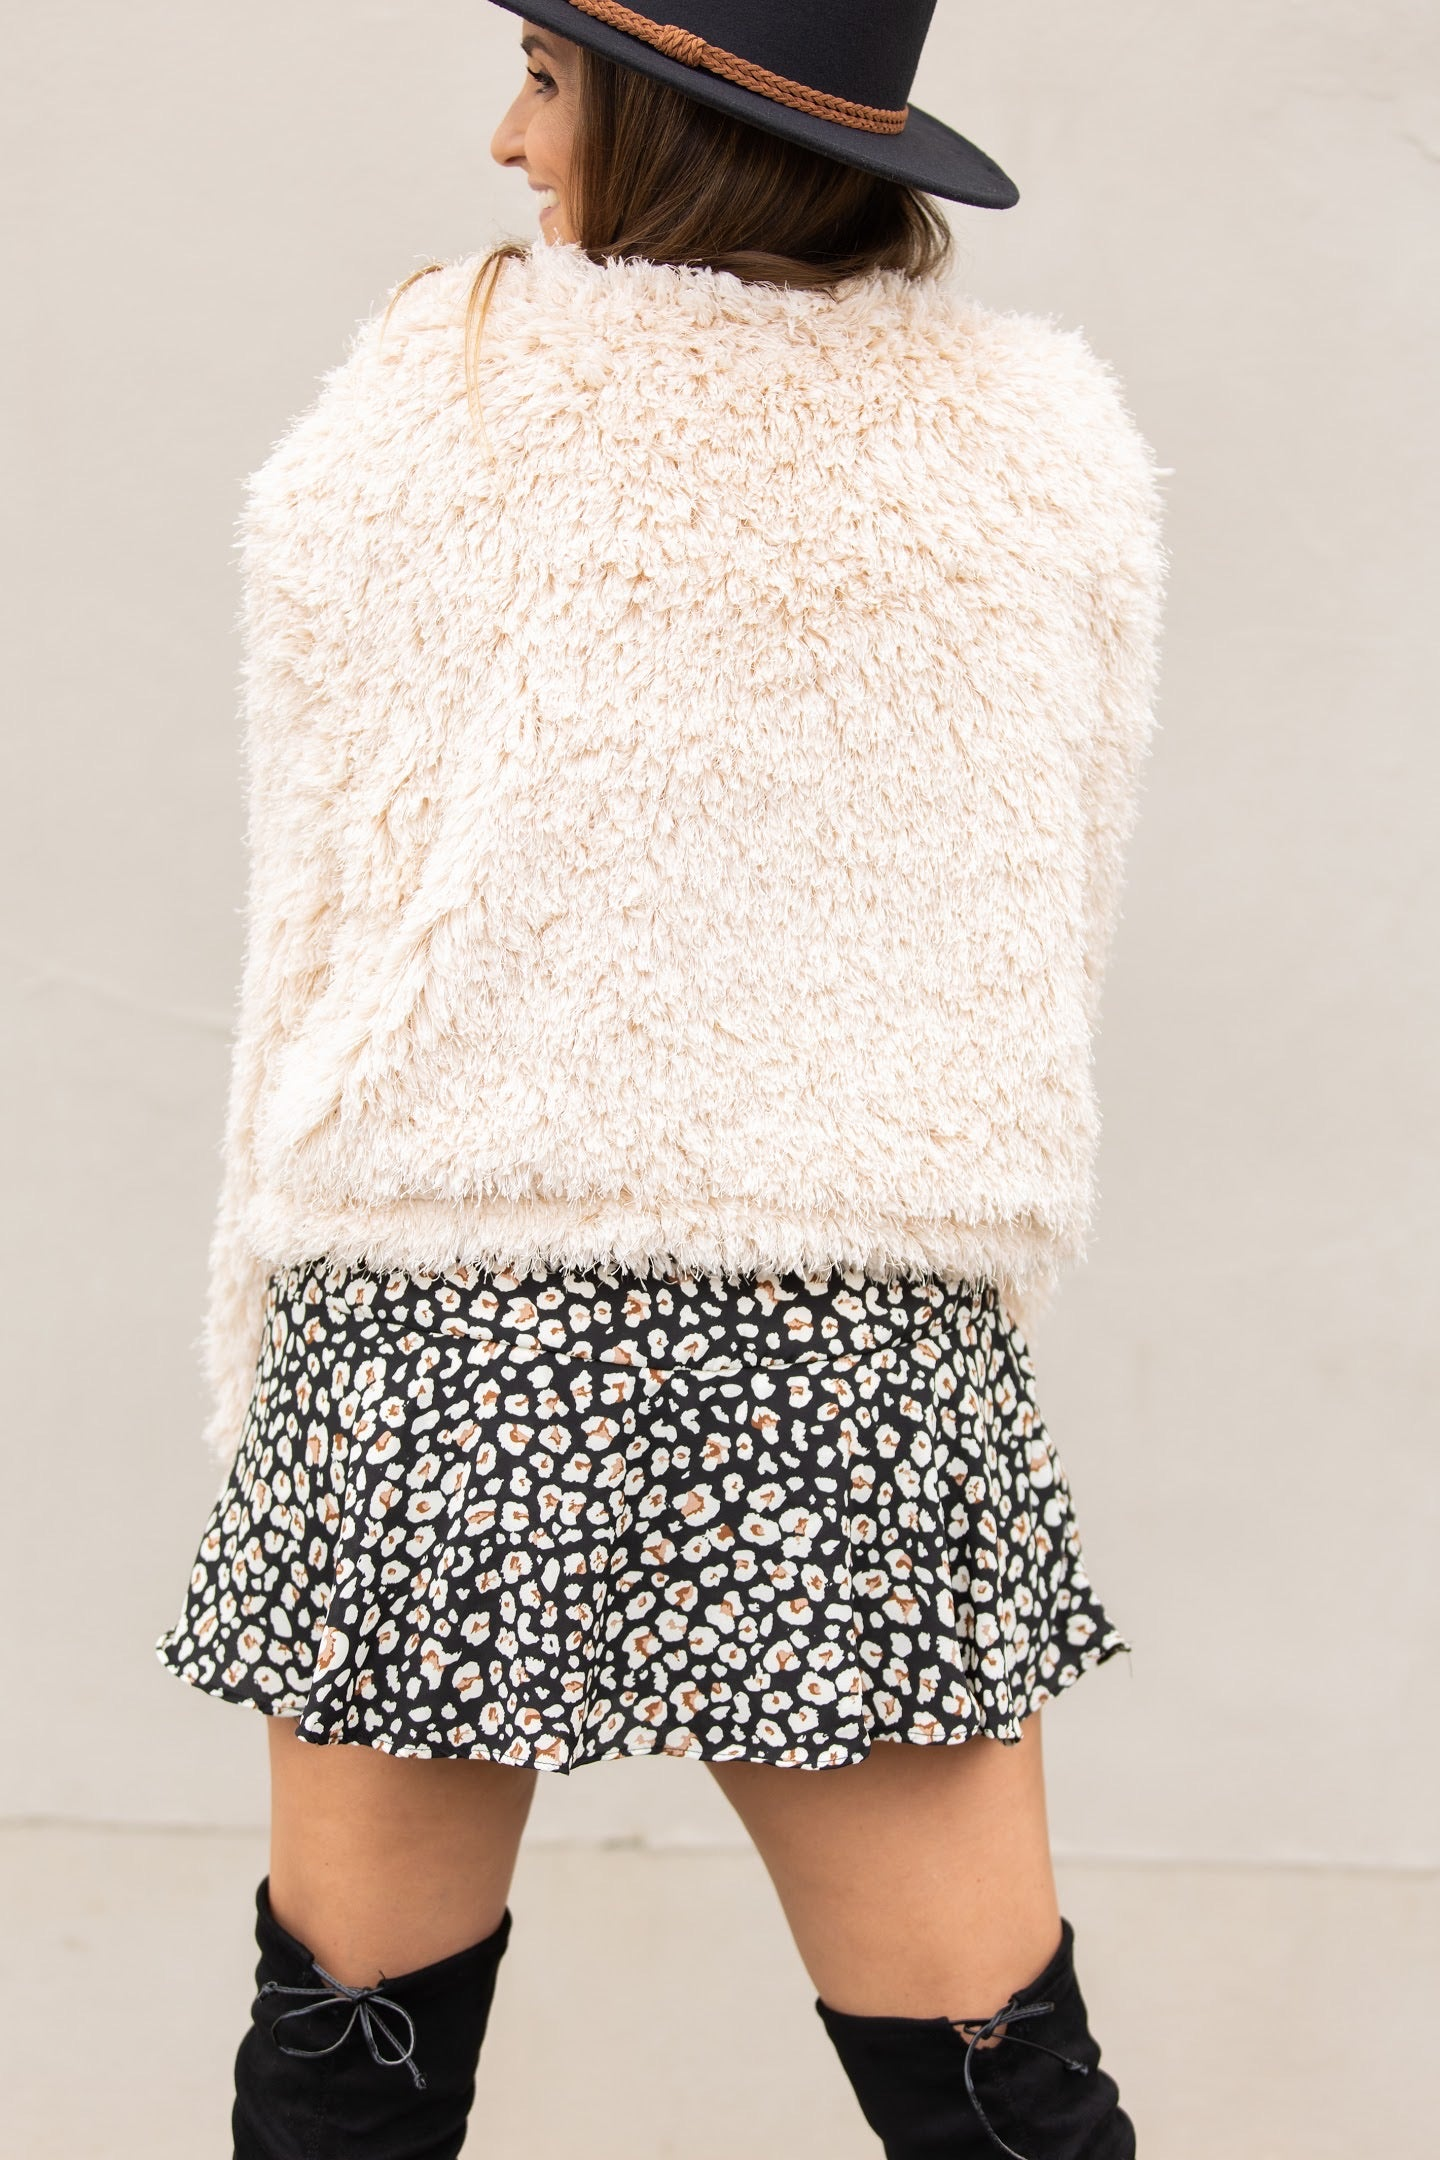 Made For You Fuzzy Cream Coat